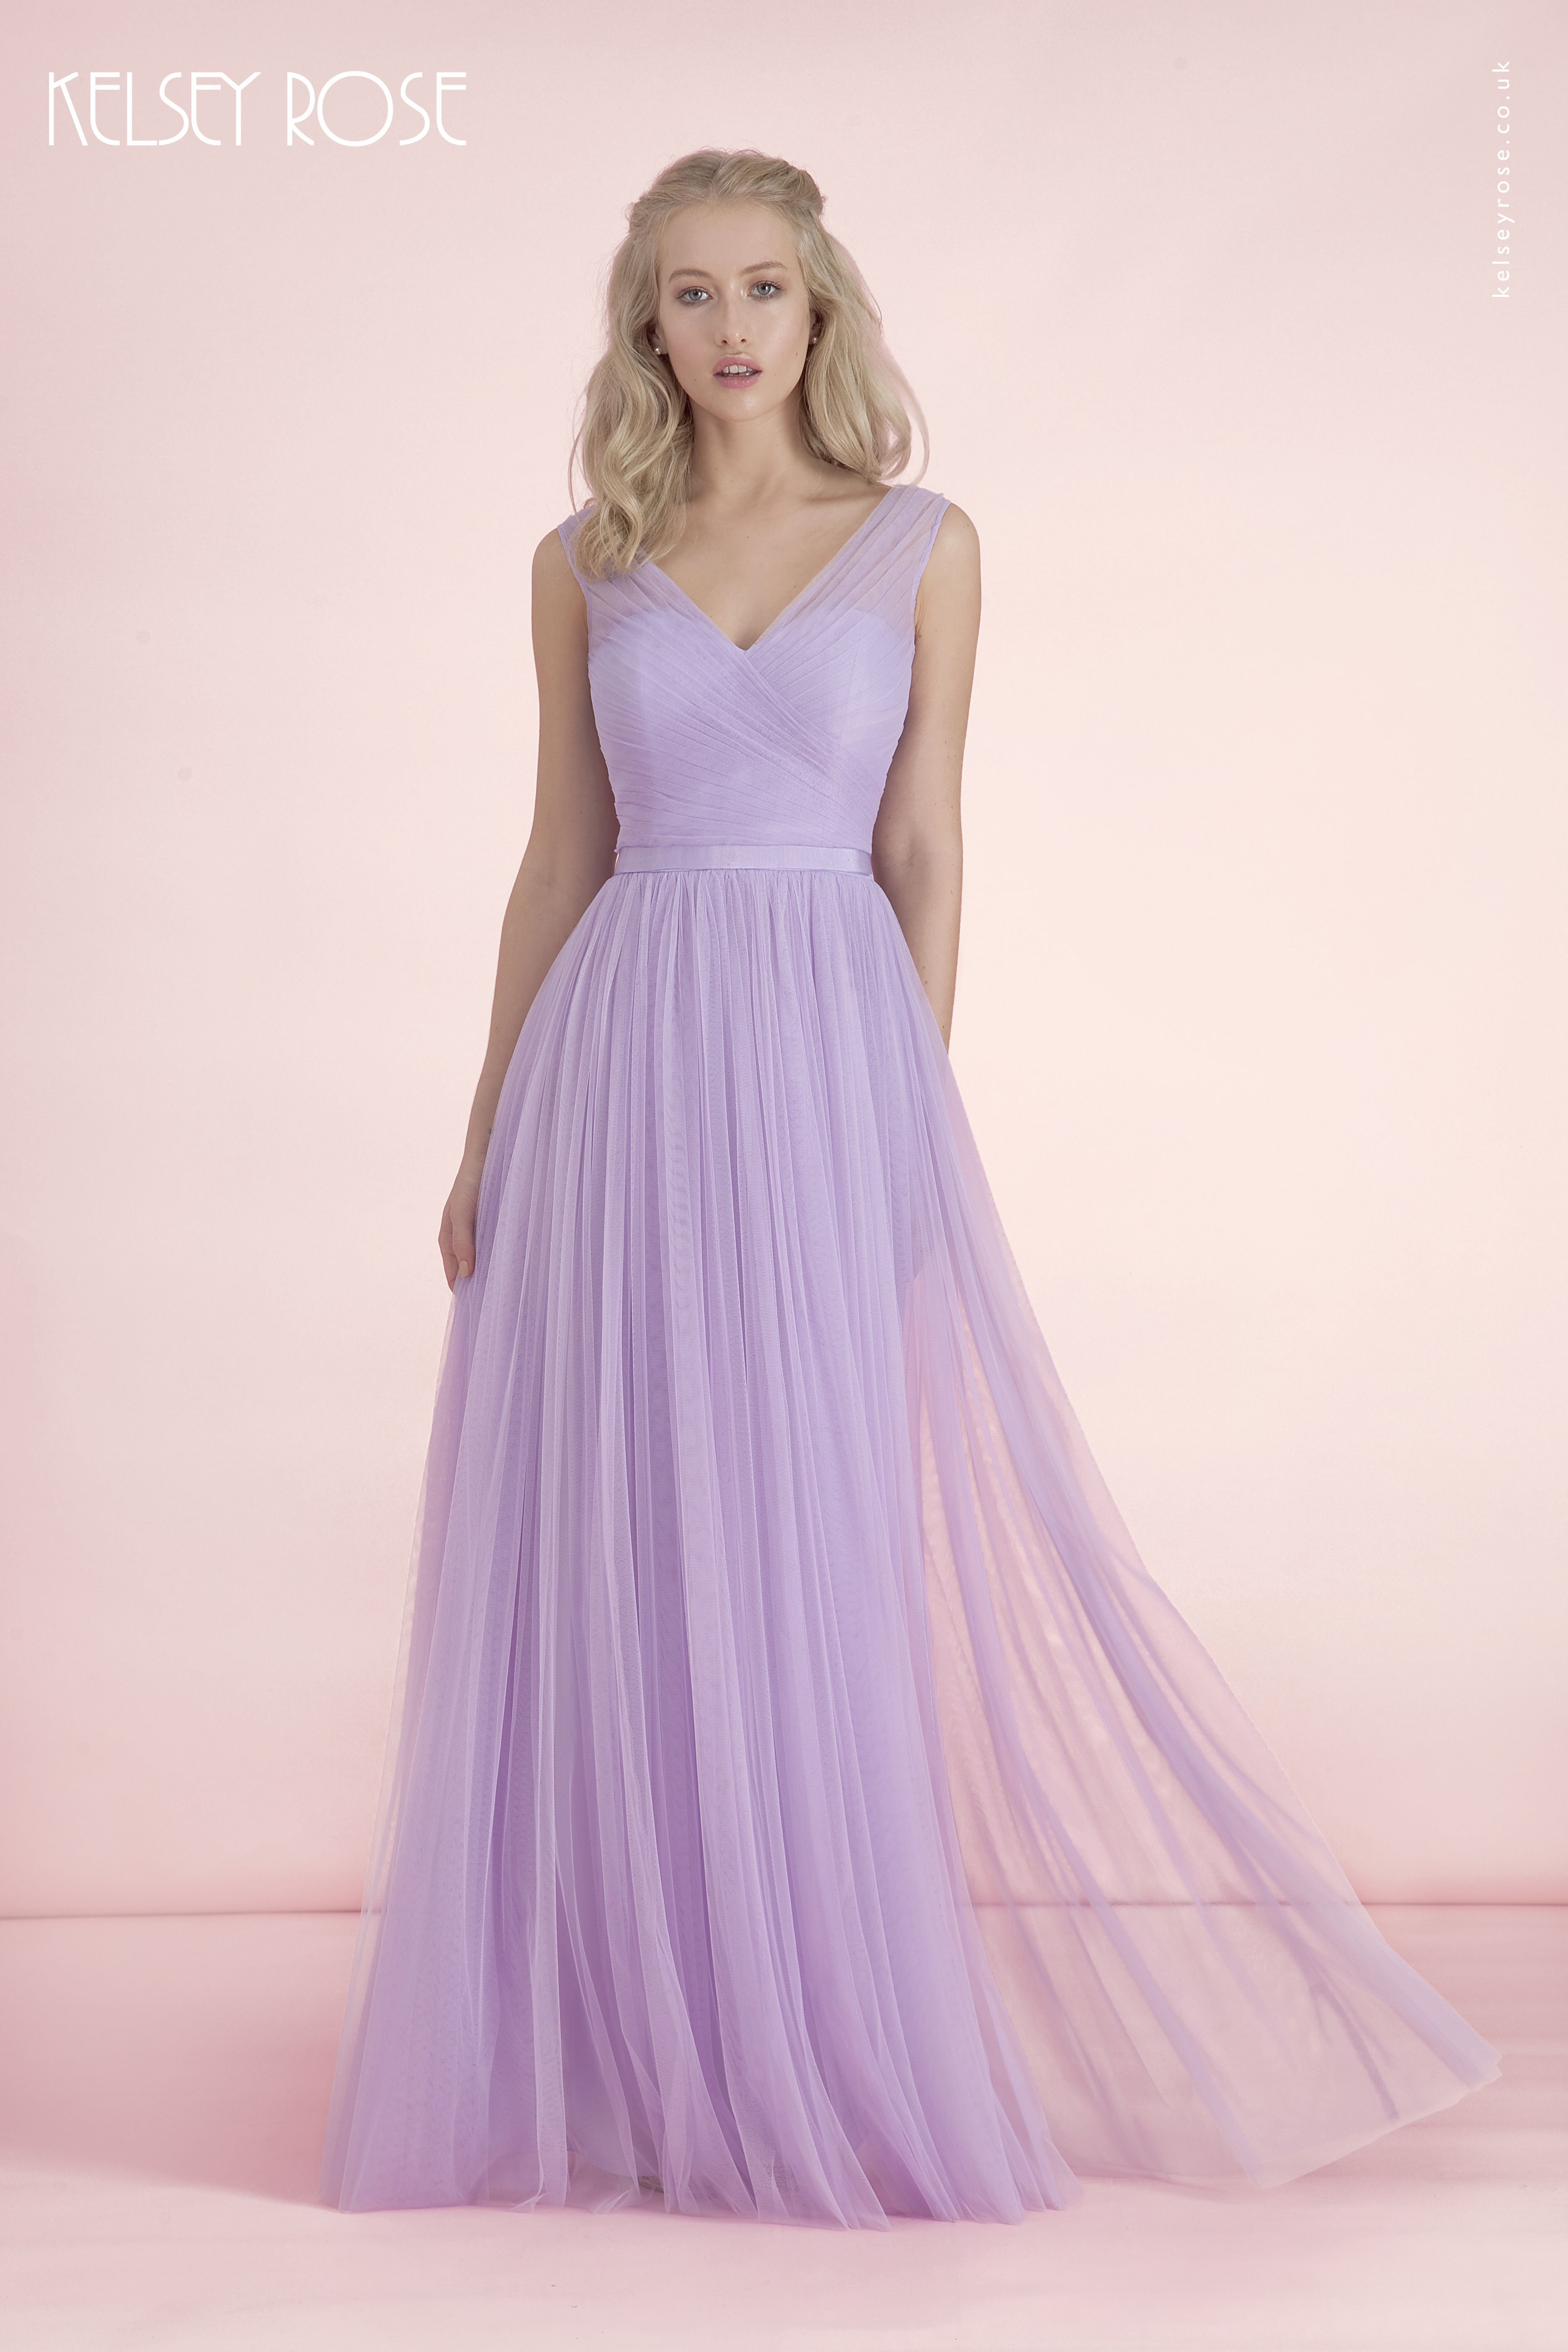 Kelsey Rose Bridesmaid Style 50110 | bridesmaid gowns | Pinterest ...